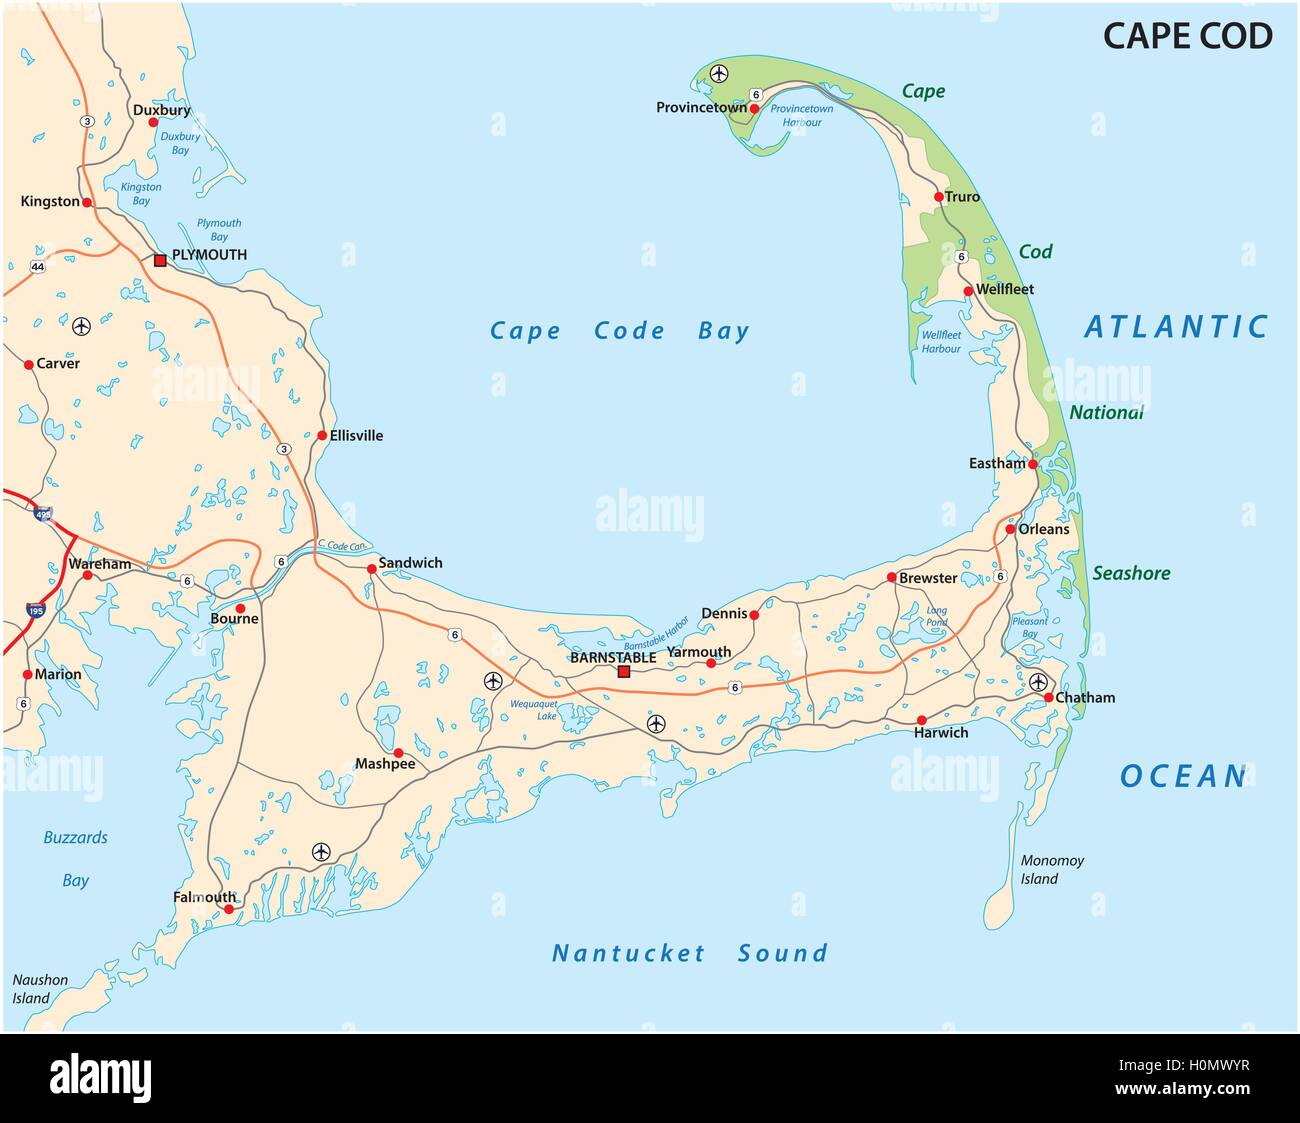 Cape Cod Airfield: Cape Cod Road Map Stock Vector Art & Illustration, Vector